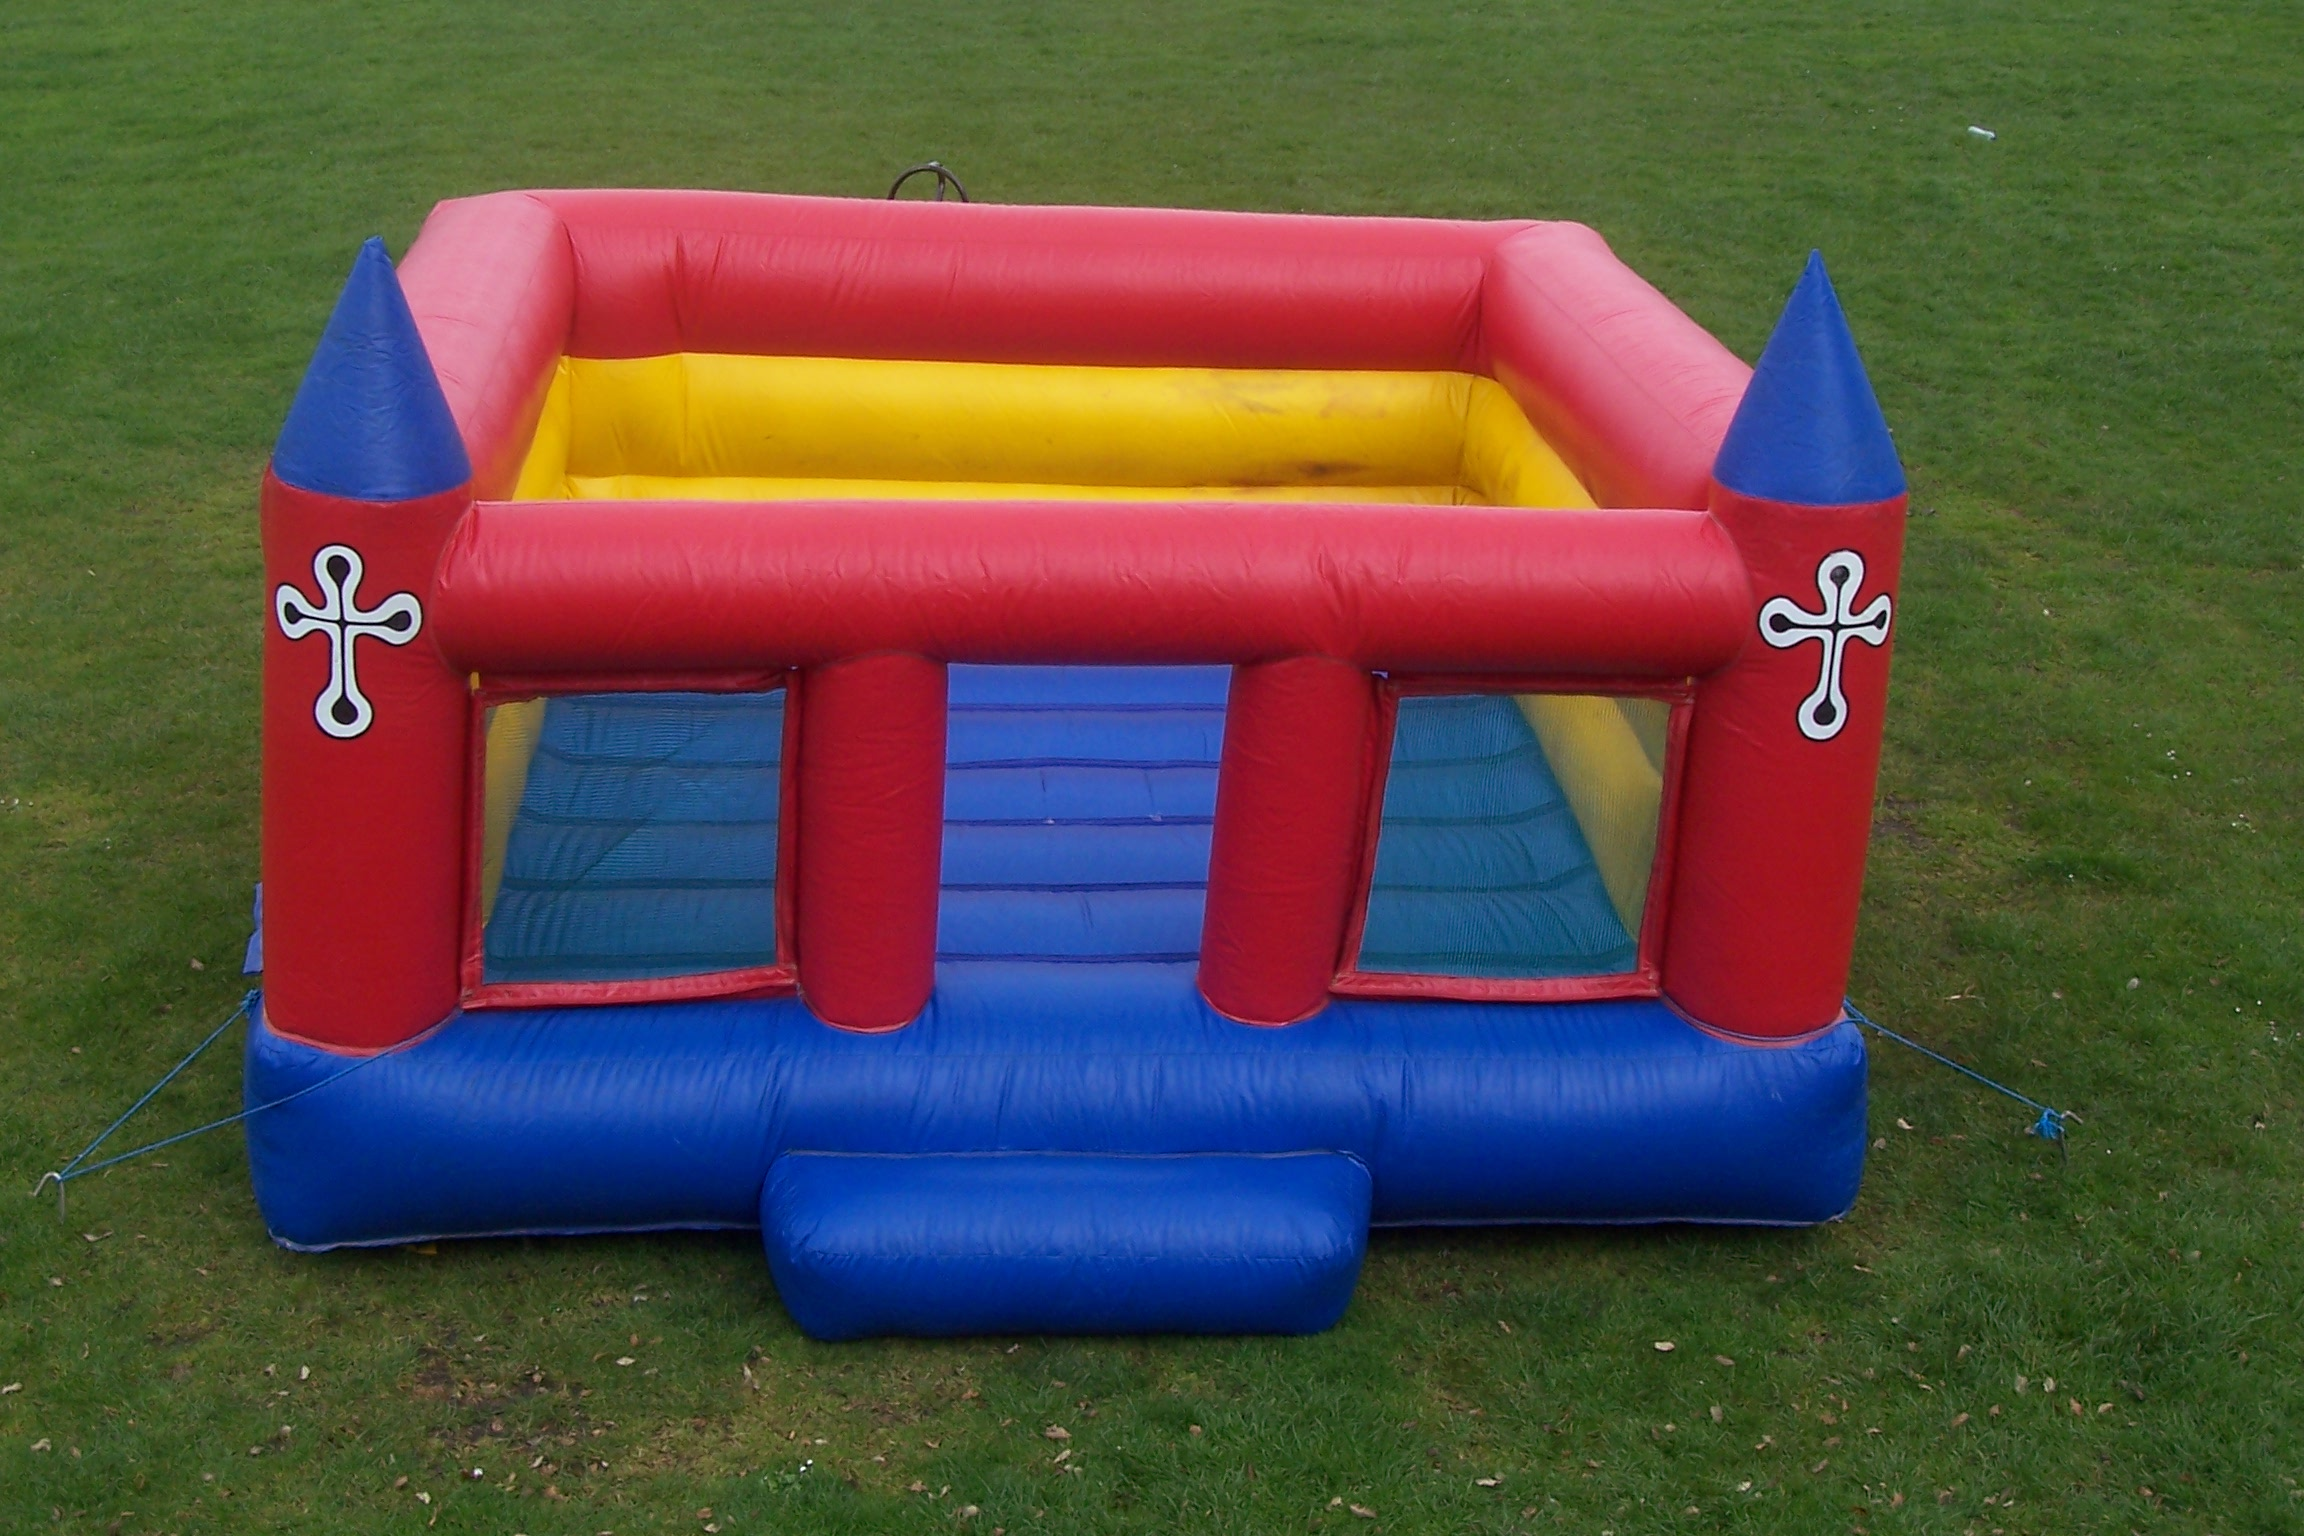 This Low Wall Bouncy Castle is perfect for use in halls with ceilings less than 8 feet high. Spacious and super bouncy, this castle is suitable for children up to the age of 13. Children must be supervised, as with all of our castles.